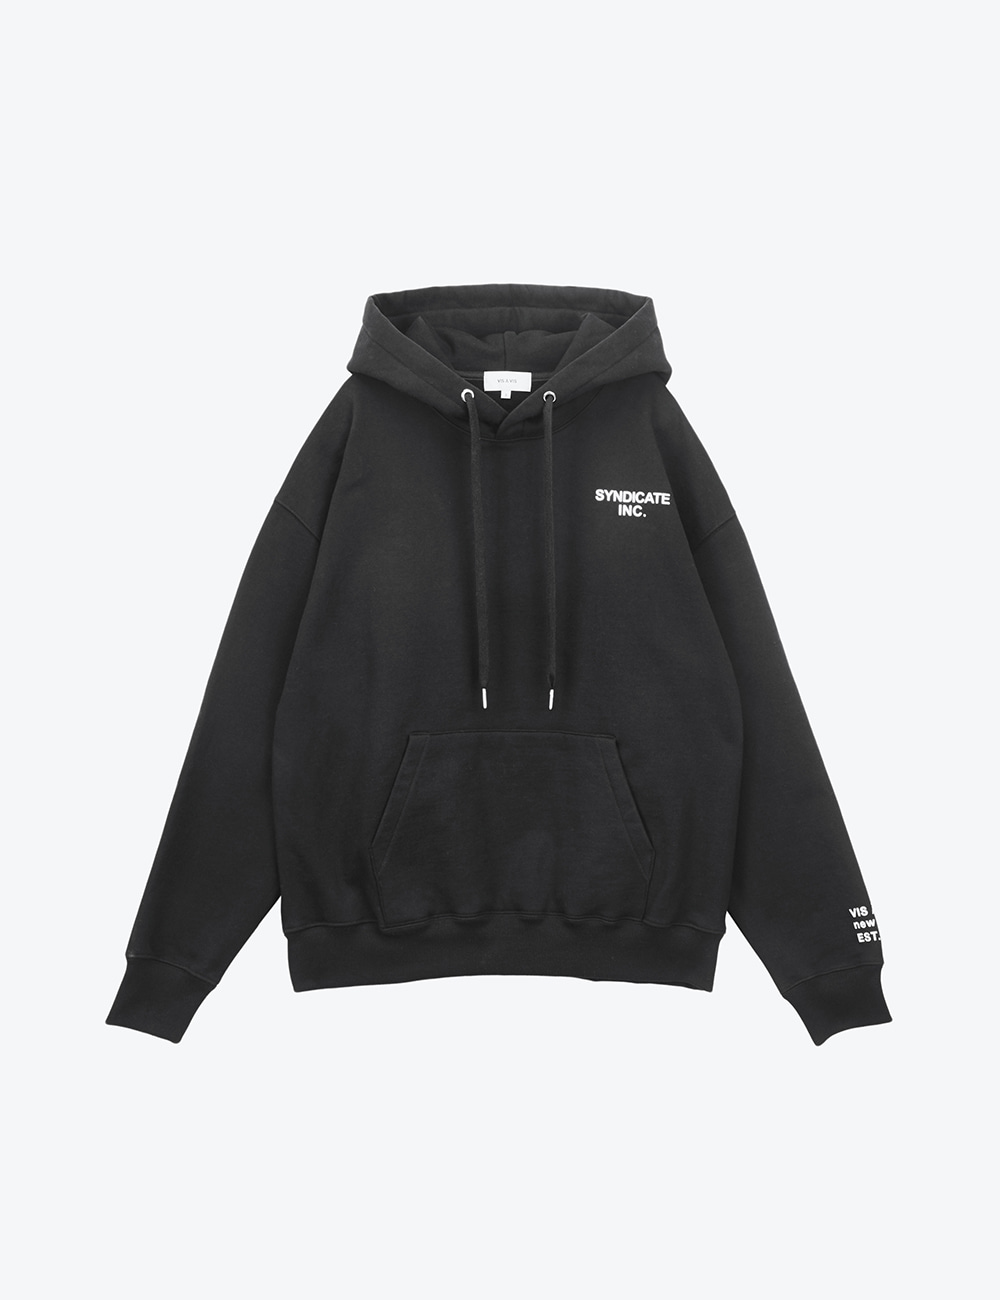 SYNDICATE UNISEX HOODED SWEATSHIRT (BLACK)